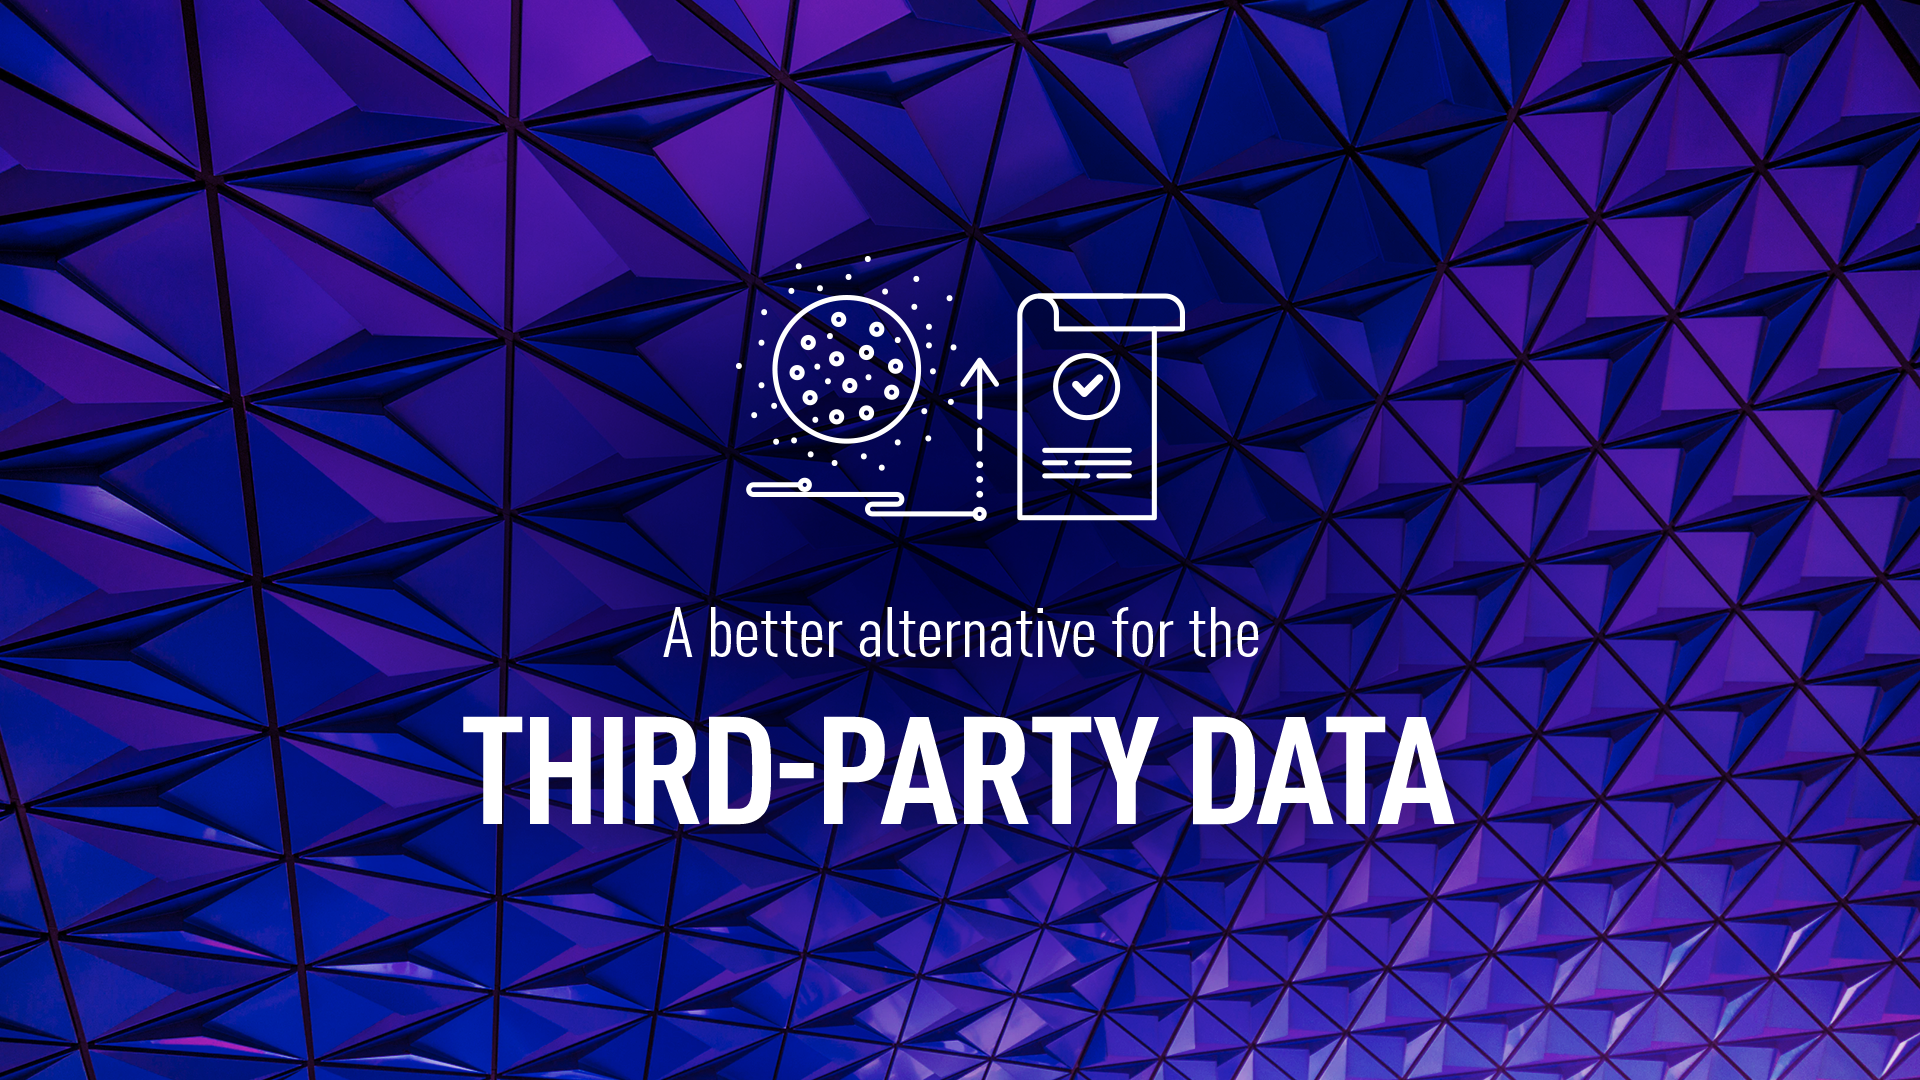 Third party data alternative